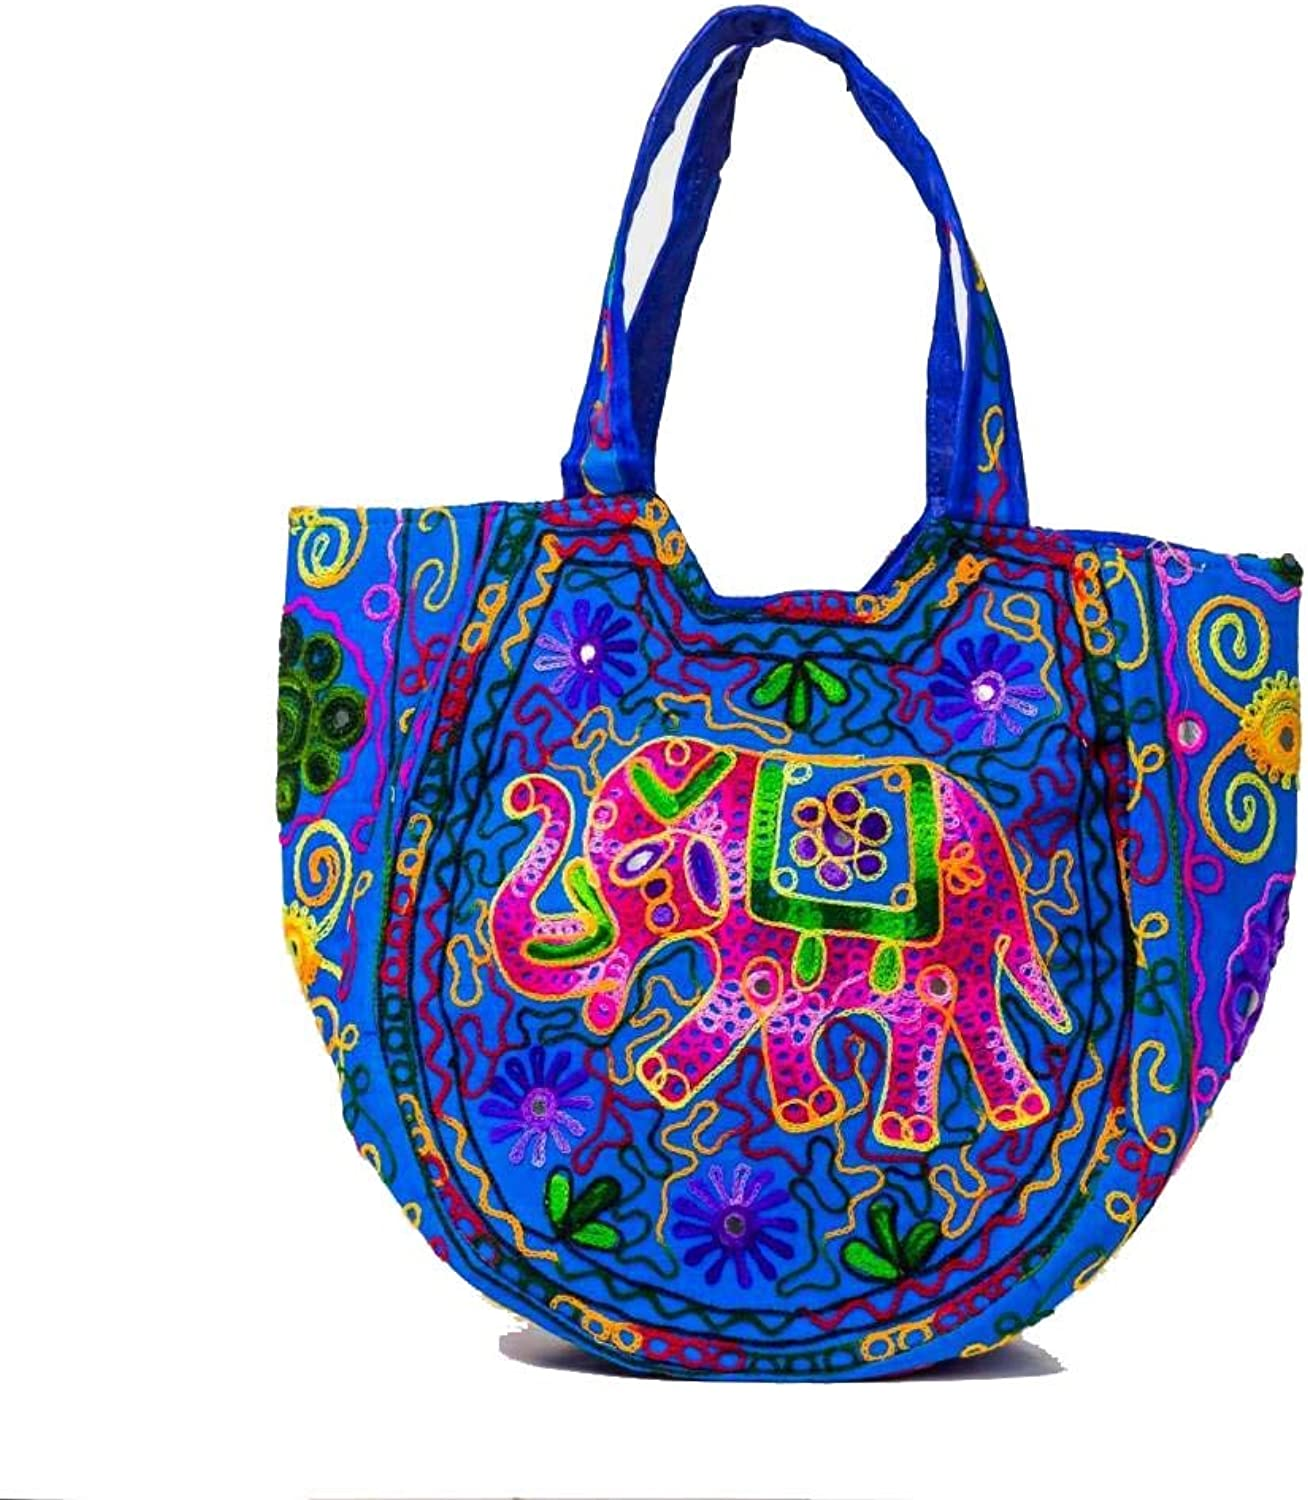 Indian Wholesale 50 pc lot Bulk Mandala Ombre Hippie Assorted Bag Tribal Boho Shoulder & Handbag Ethnic Cotton Messenger Carry Bag With Shoulder Strap Tote Purse For Ladies by Craft Place CAD-16